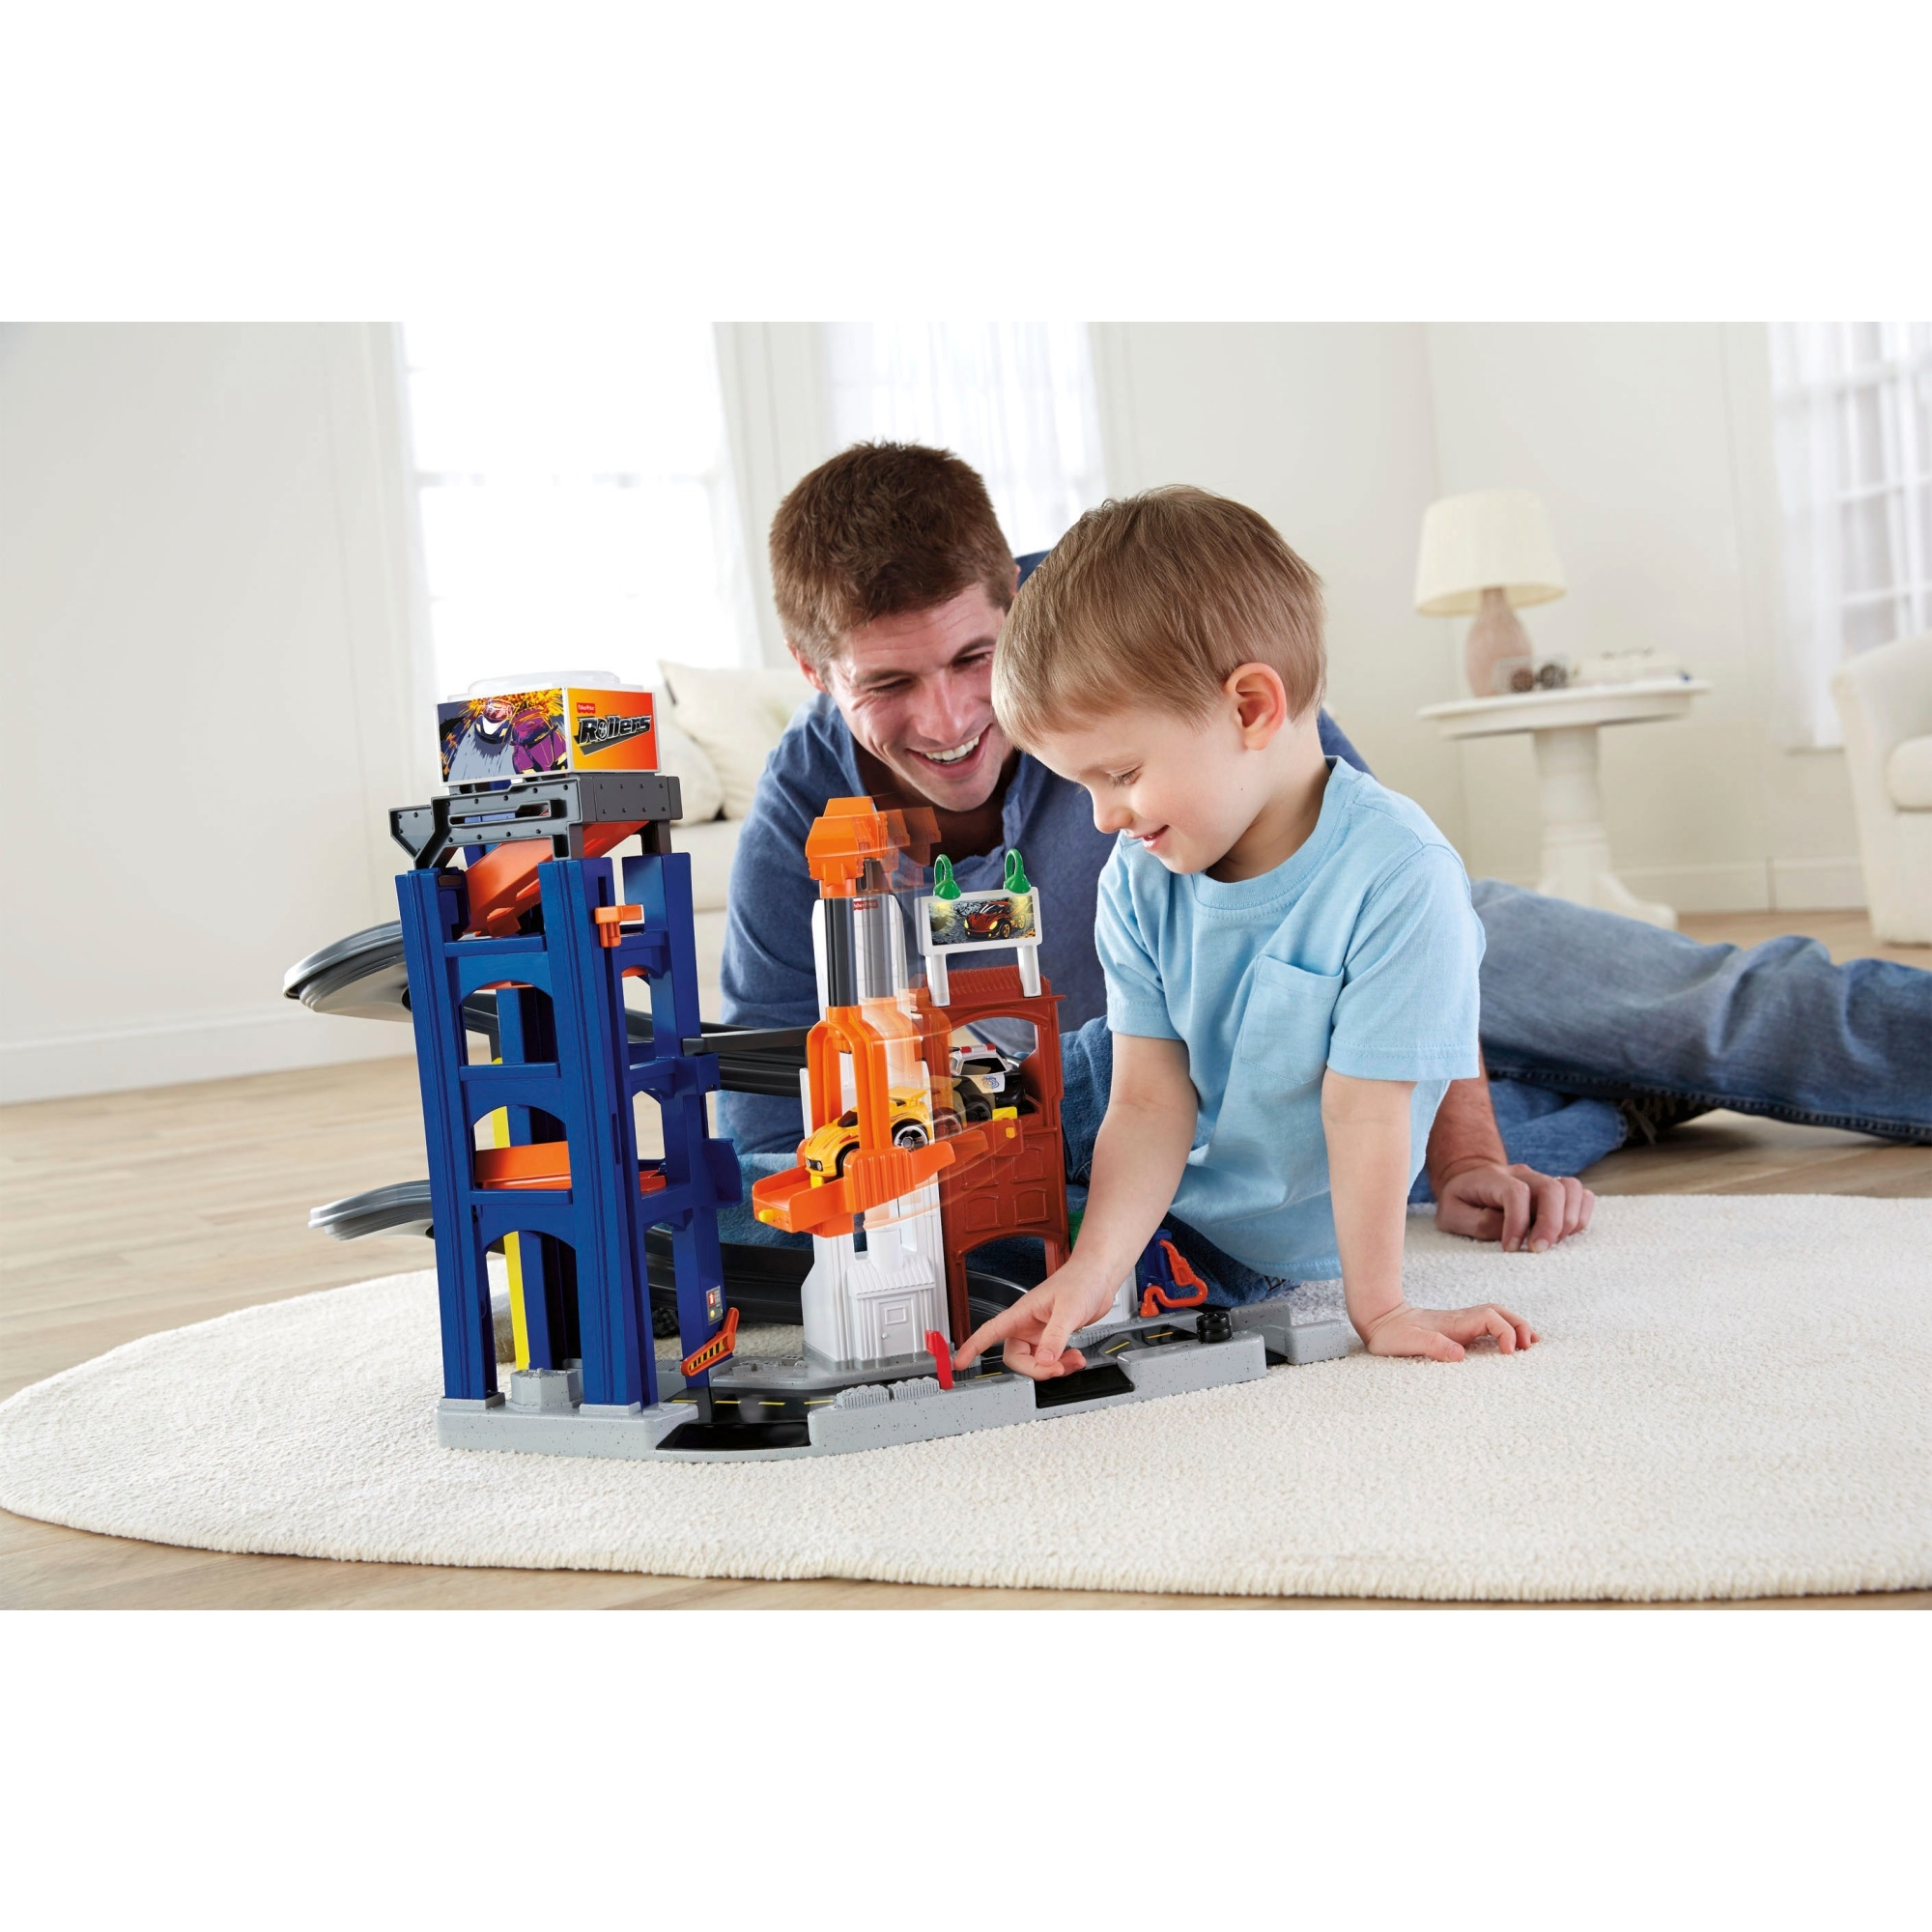 FisherPrice Rollers Get Away Garage